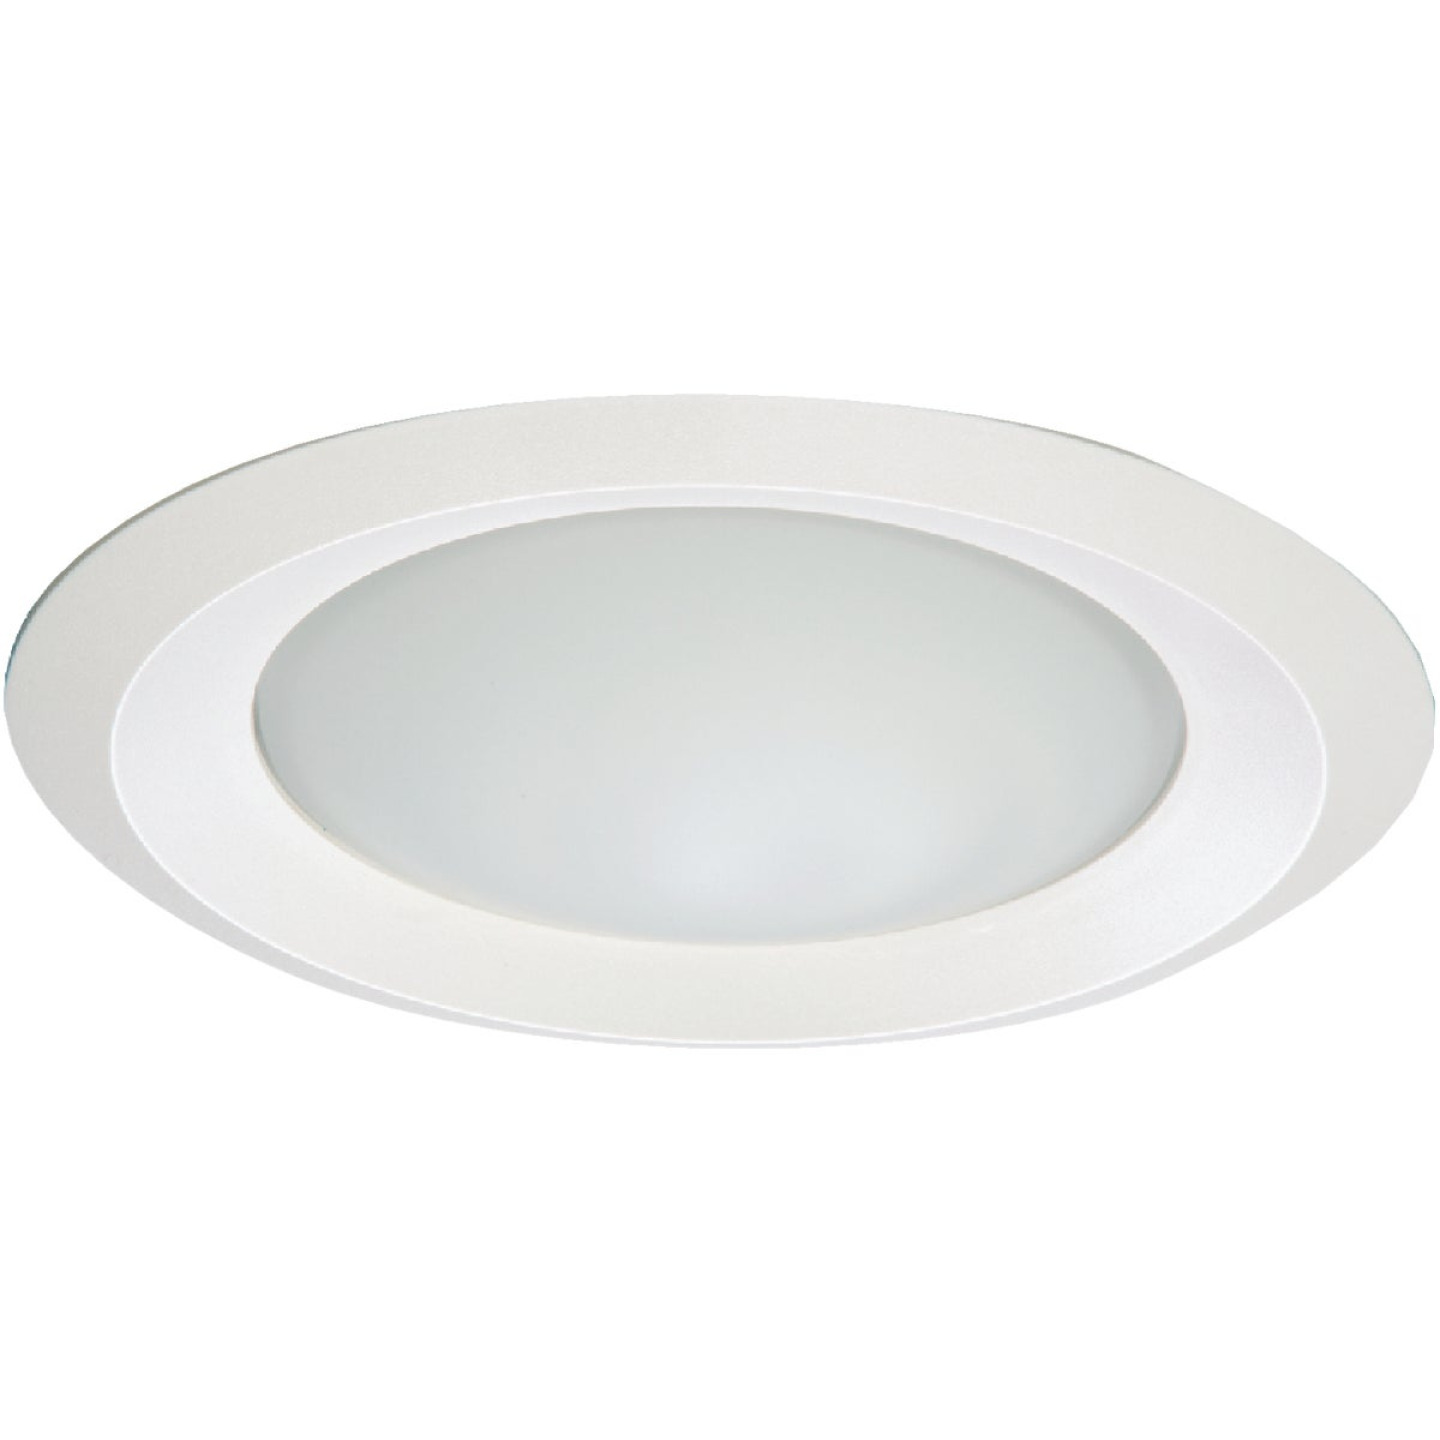 Halo 6 In. White Disc Frosted Glass Lens Recessed Light Fixture Trim Image 1